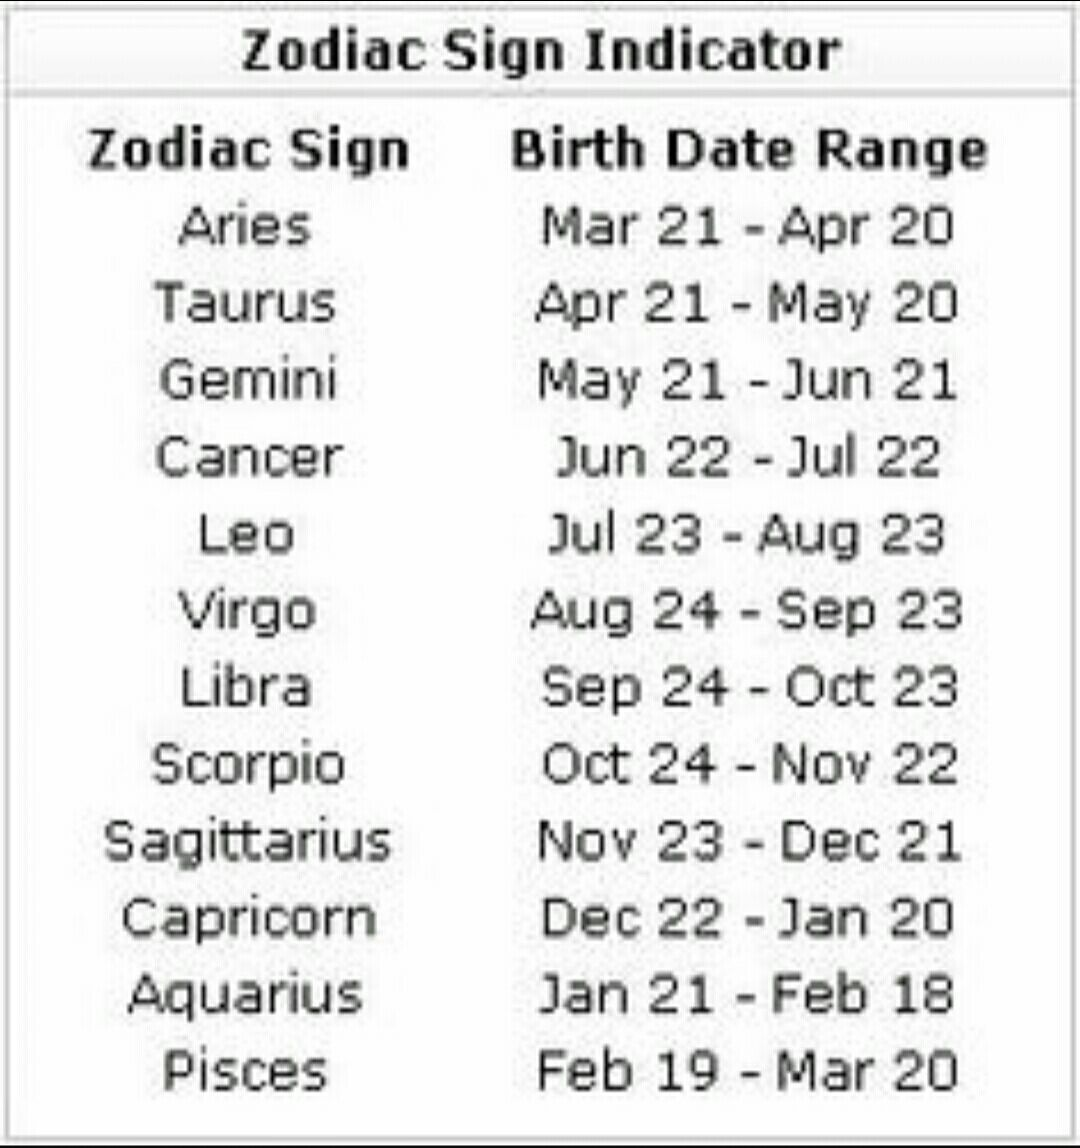 What are the signs of the zodiac